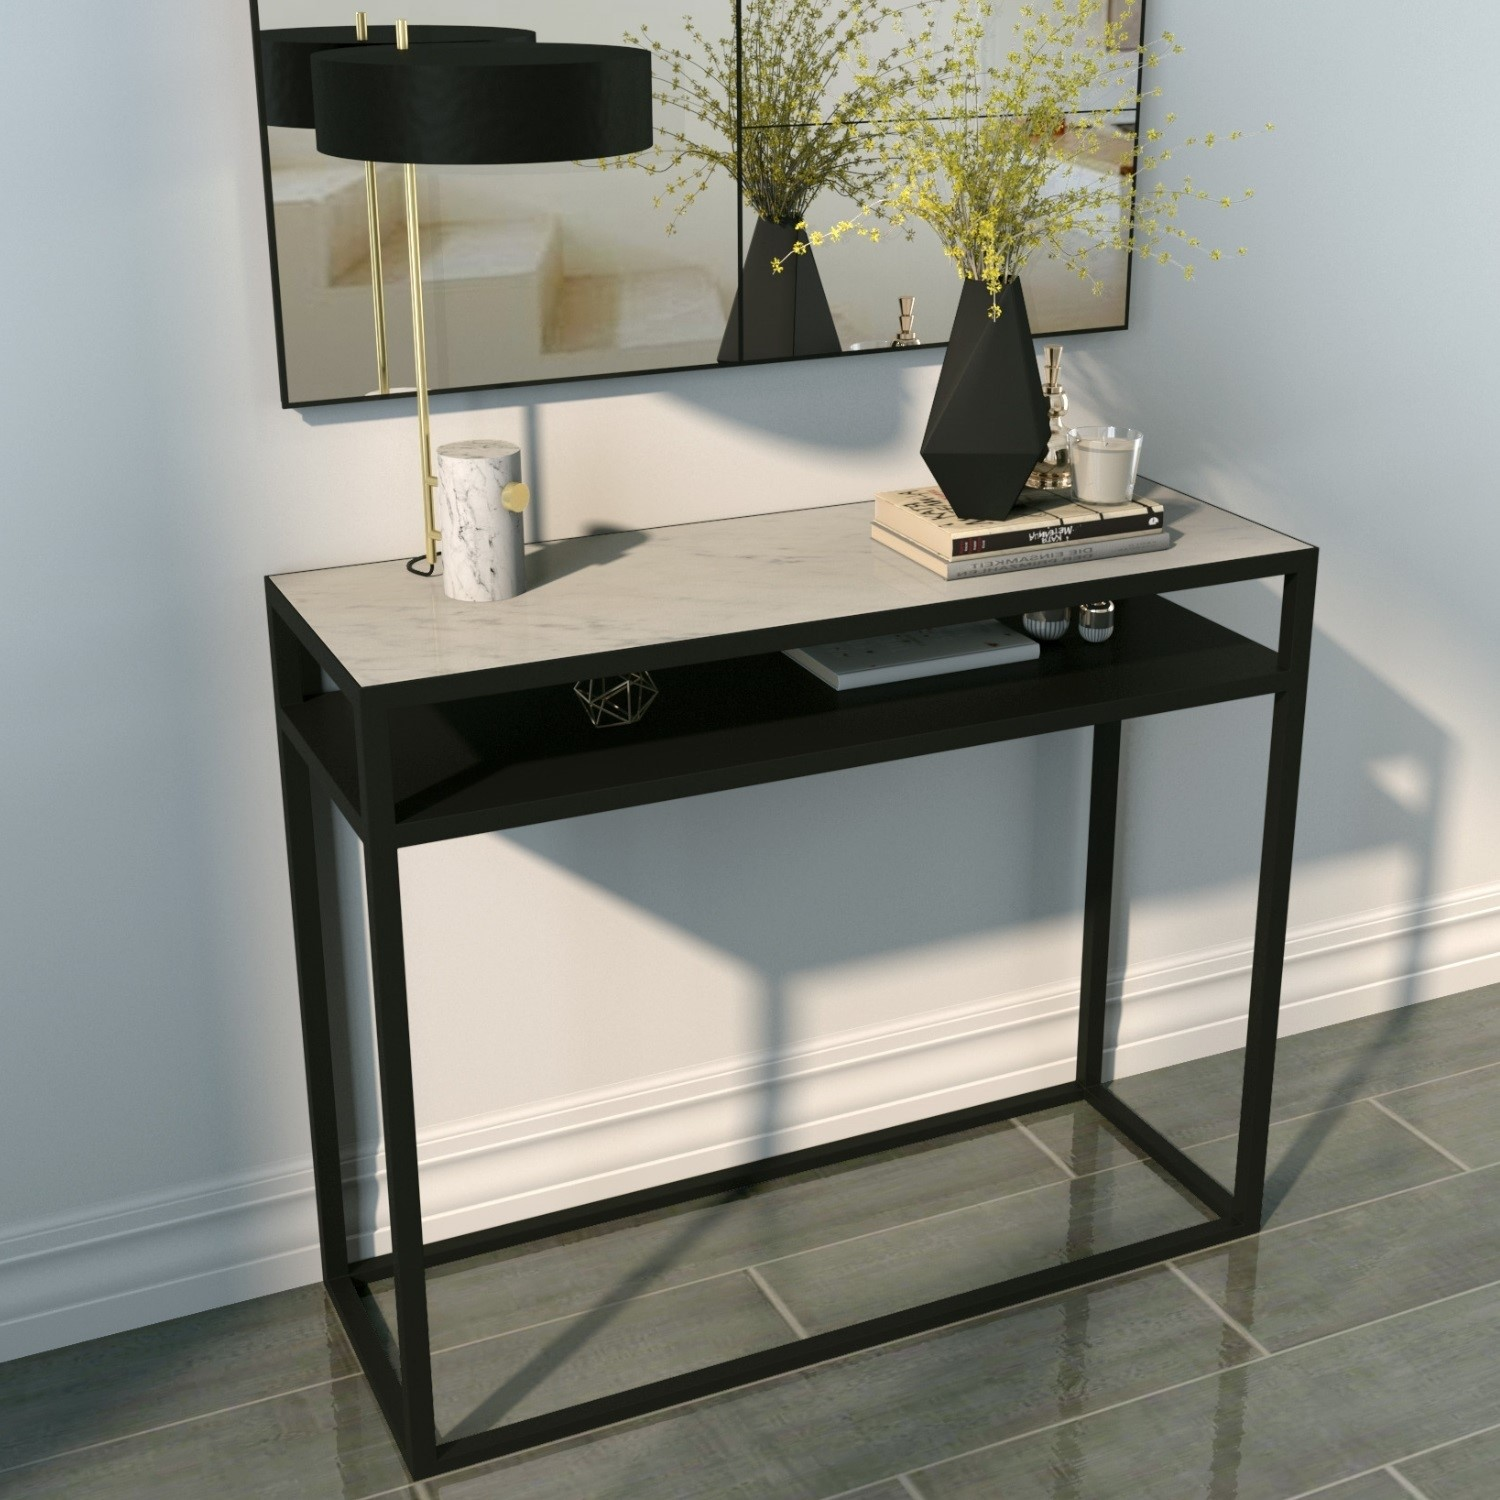 Picture of: Marble Top Console Table With Black Iron Base Narrow Furniture123